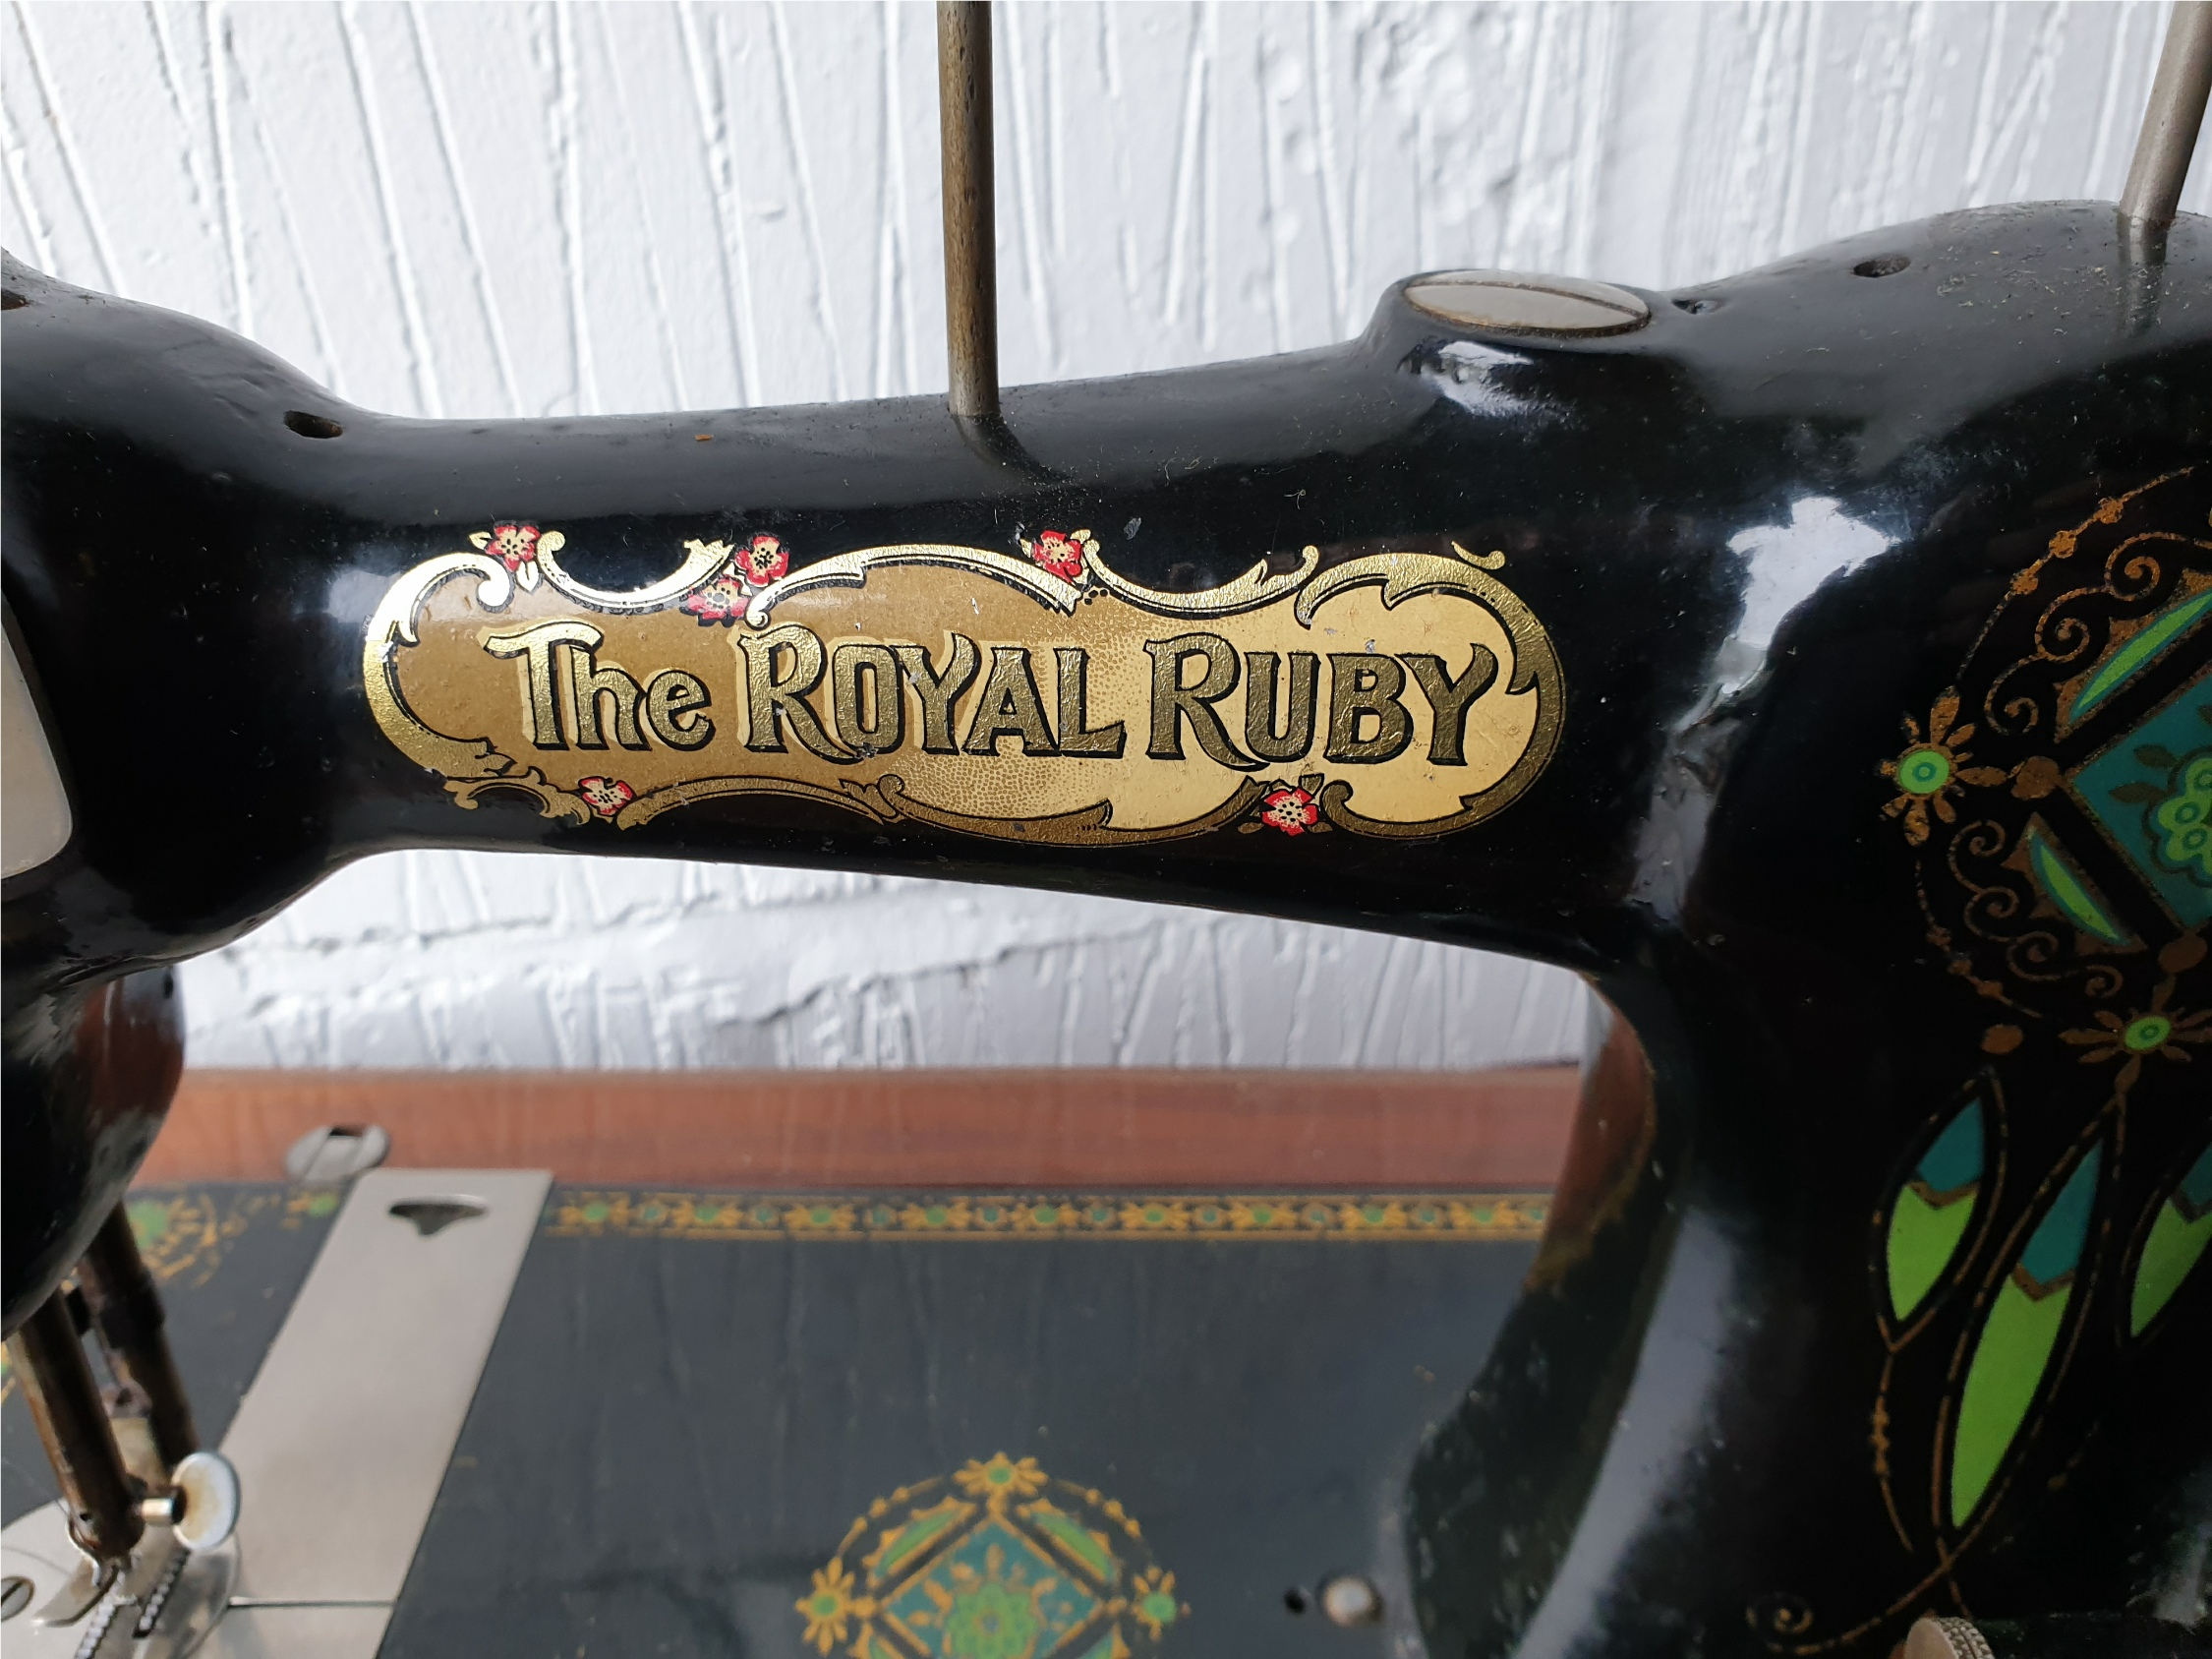 Vintage The Royal Ruby Sewing Machine - Image 3 of 5